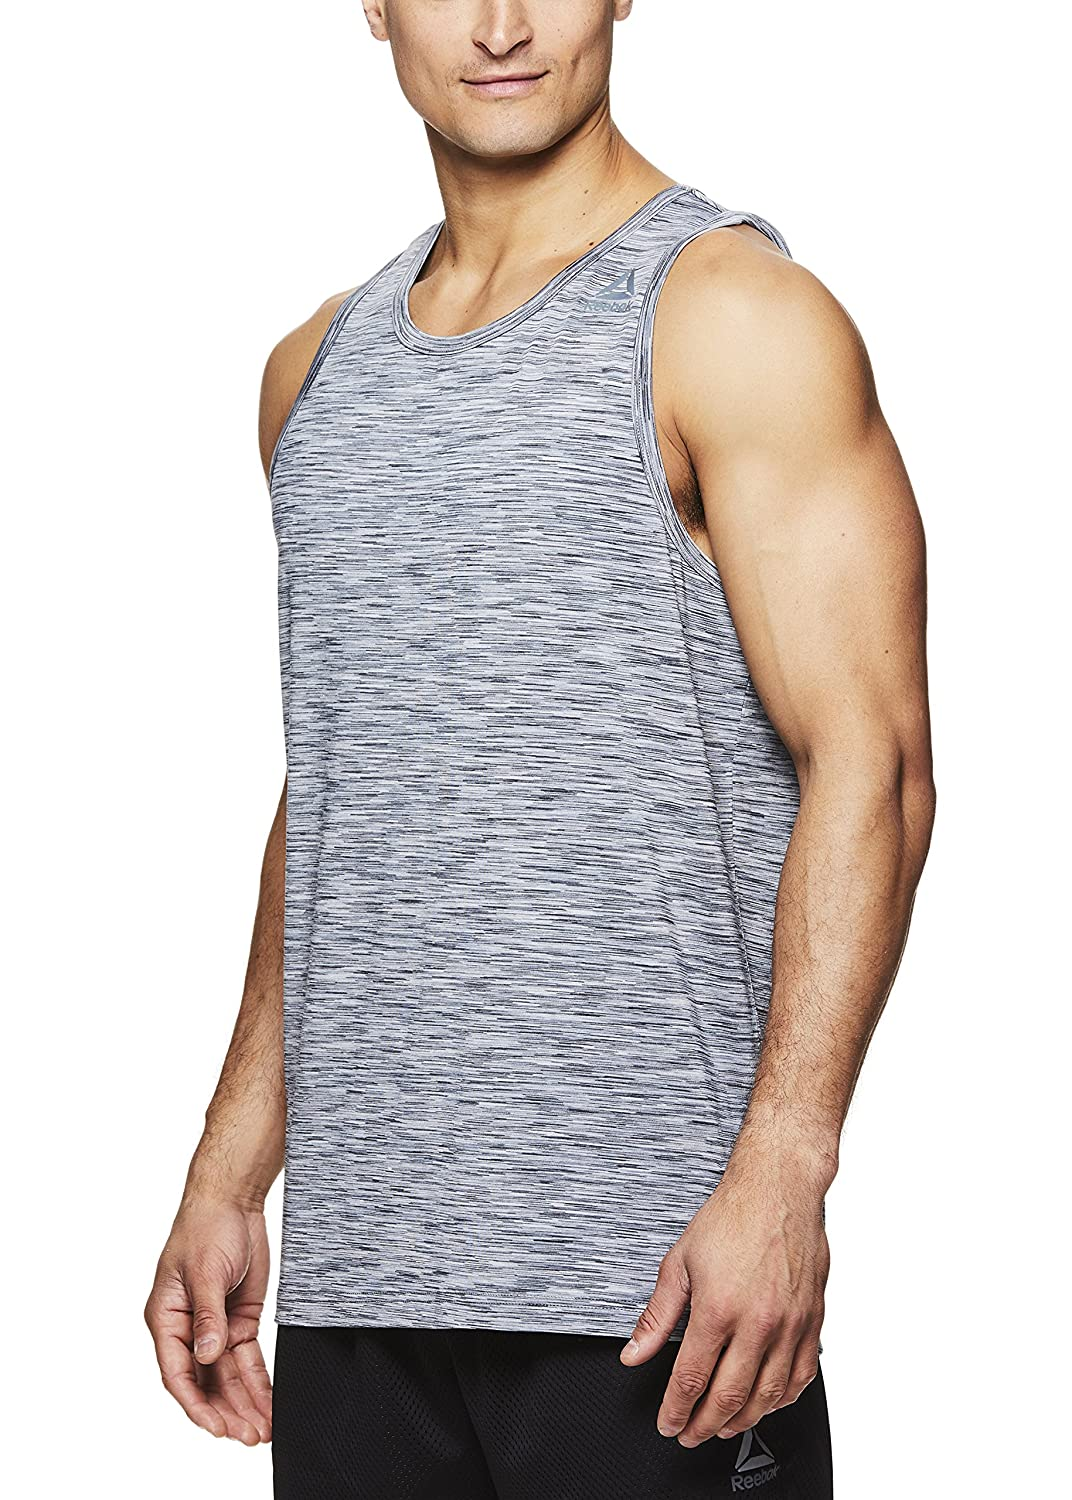 229e103a03731 PEAK PERFORMANCE  Reebok tanks set the new bar for men s gym shirts. Our  performance tank tops are perfect for any and all sports providing the  comfort and ...